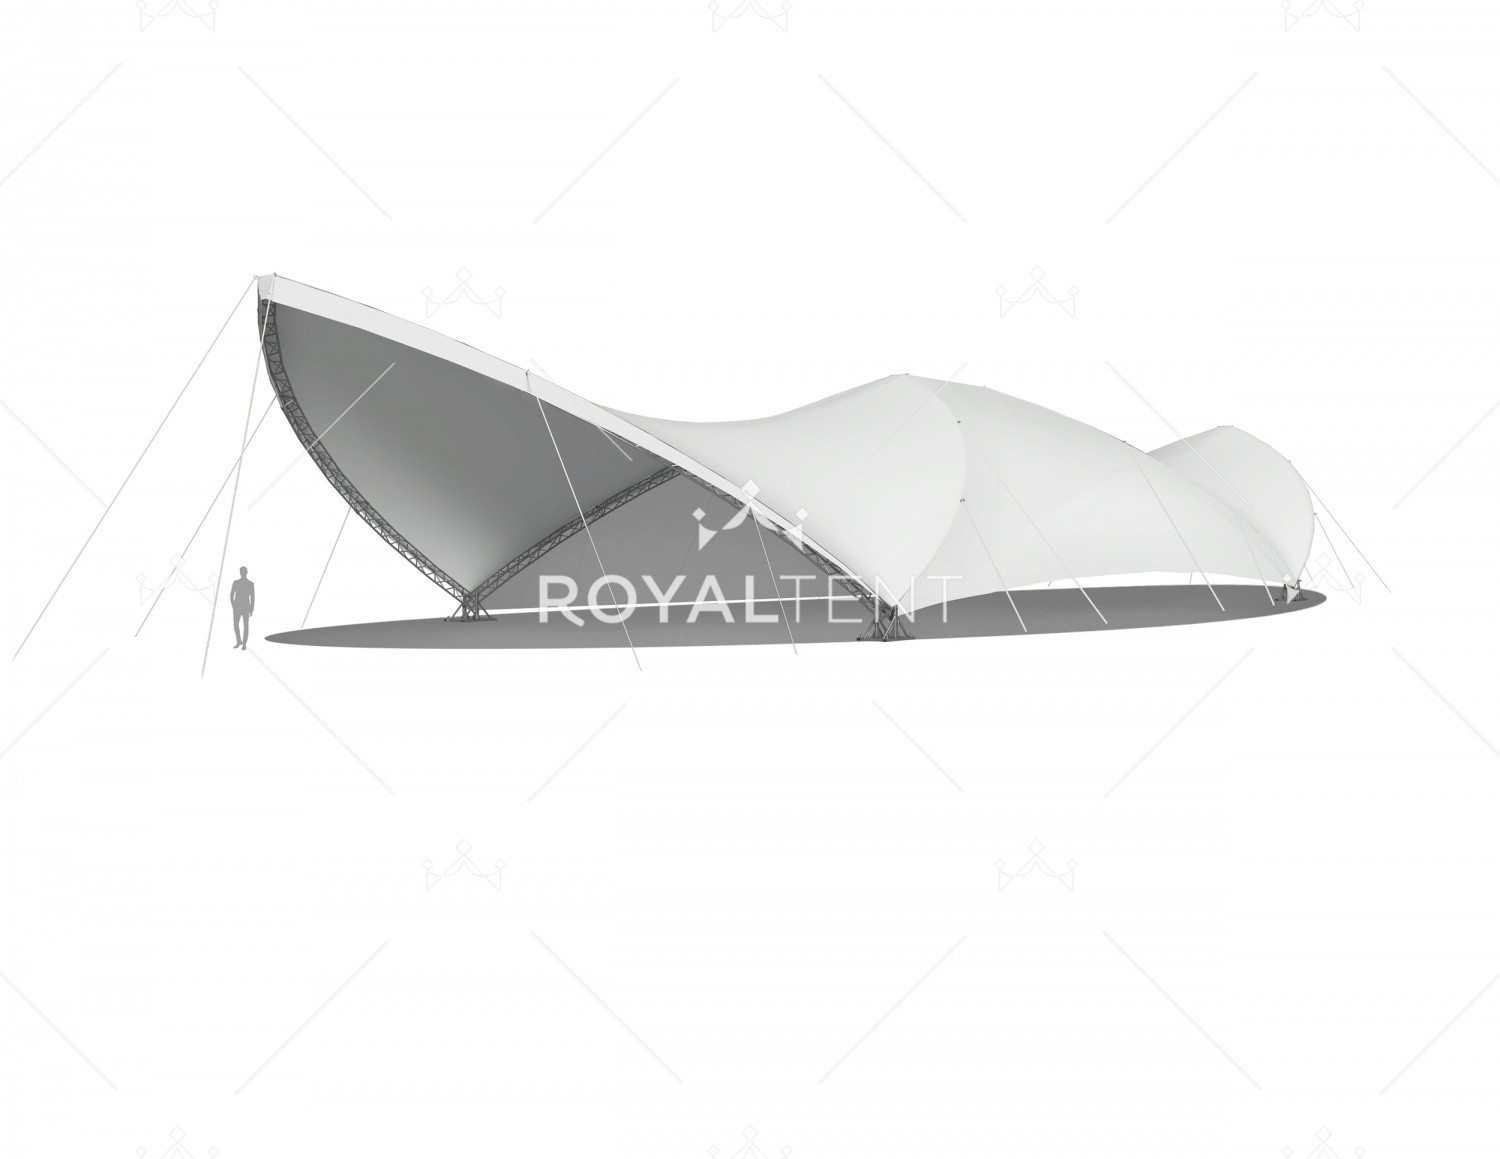 https://royaltent.me/houses_images/tent7_1_200116072707.jpg